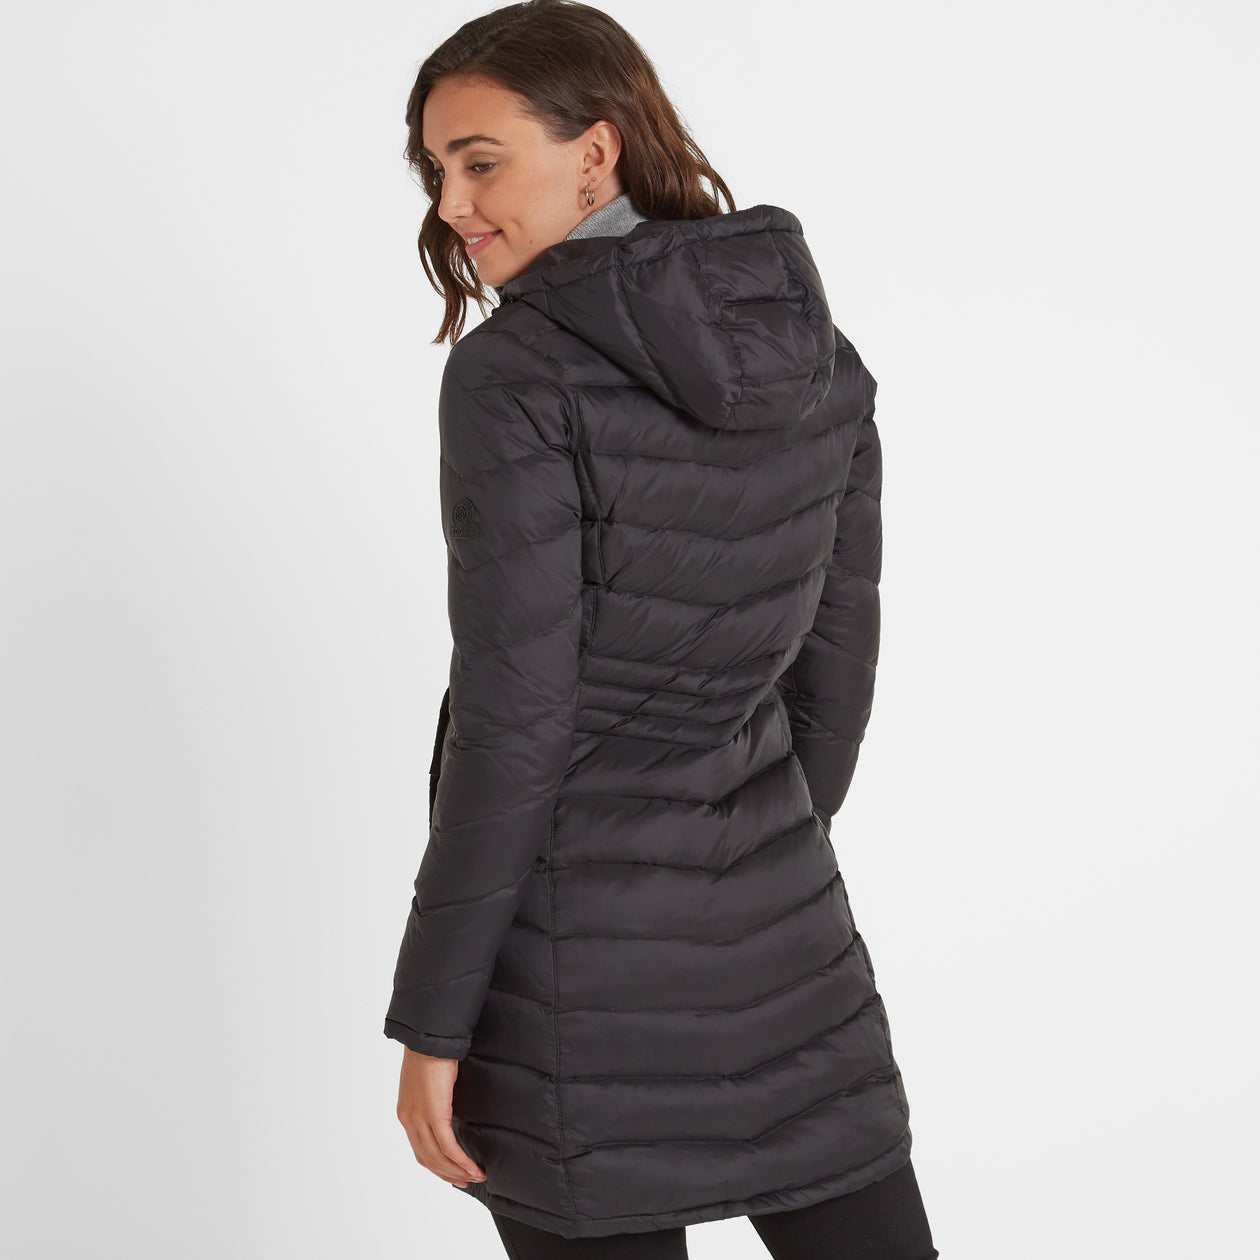 Bramley Womens Down Jacket - Black image 4